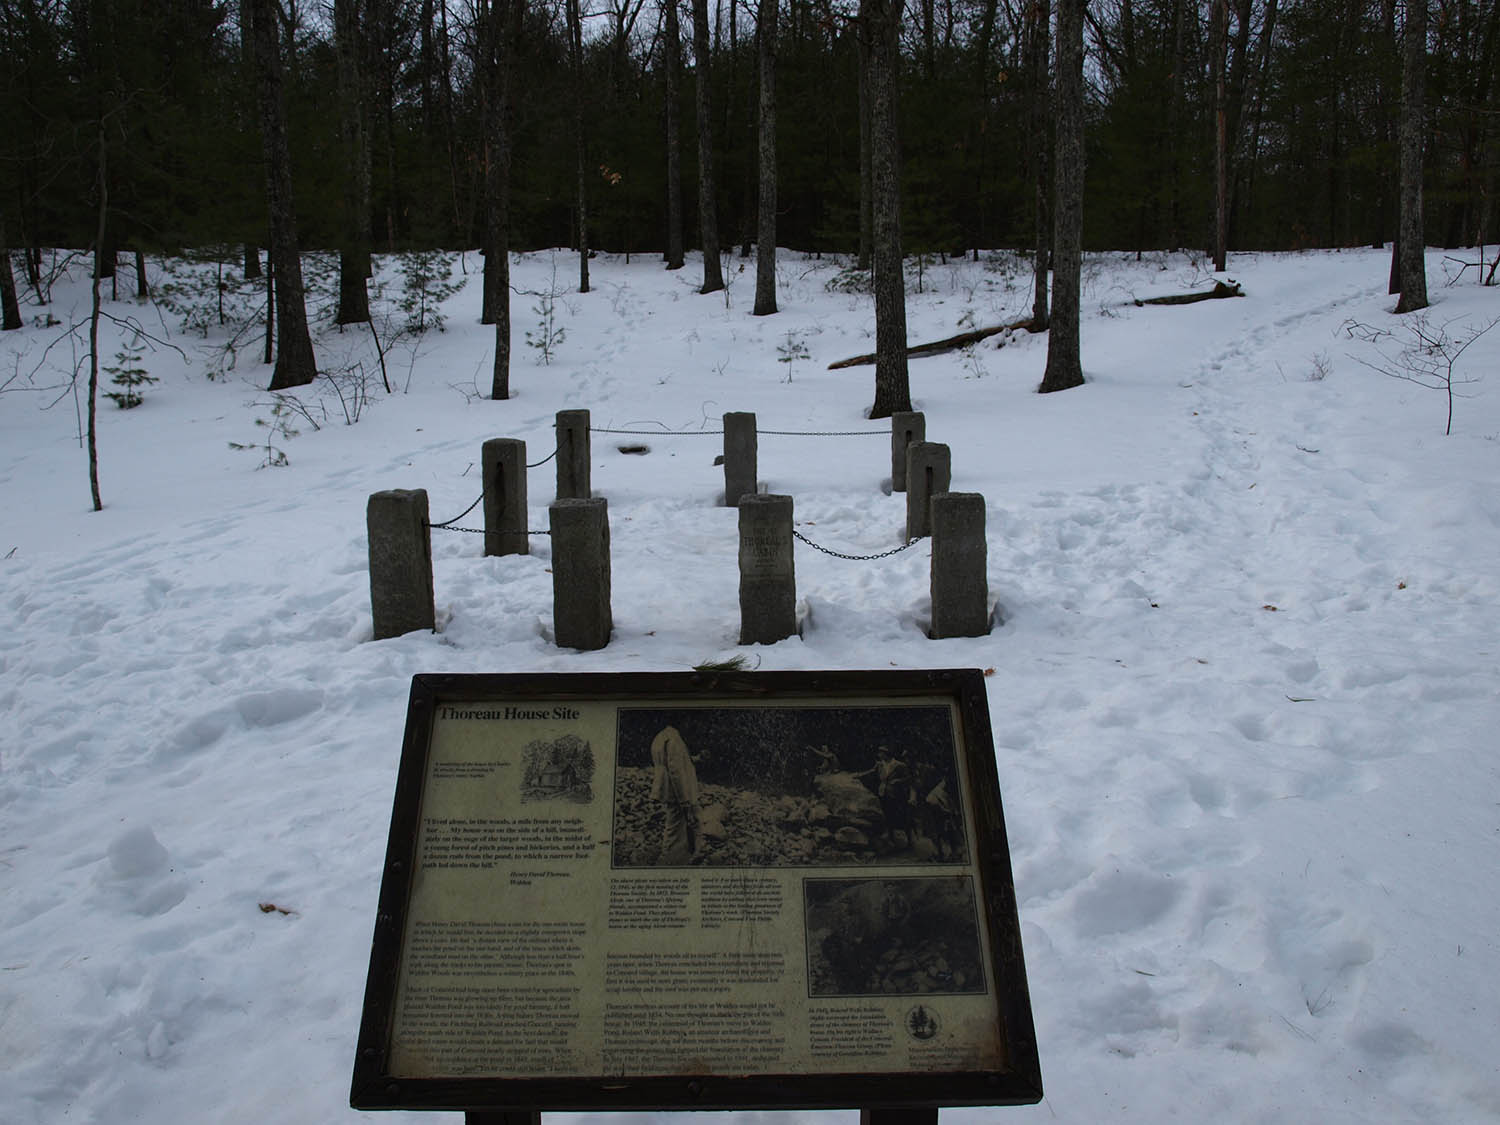 Thoreau Cabin Site